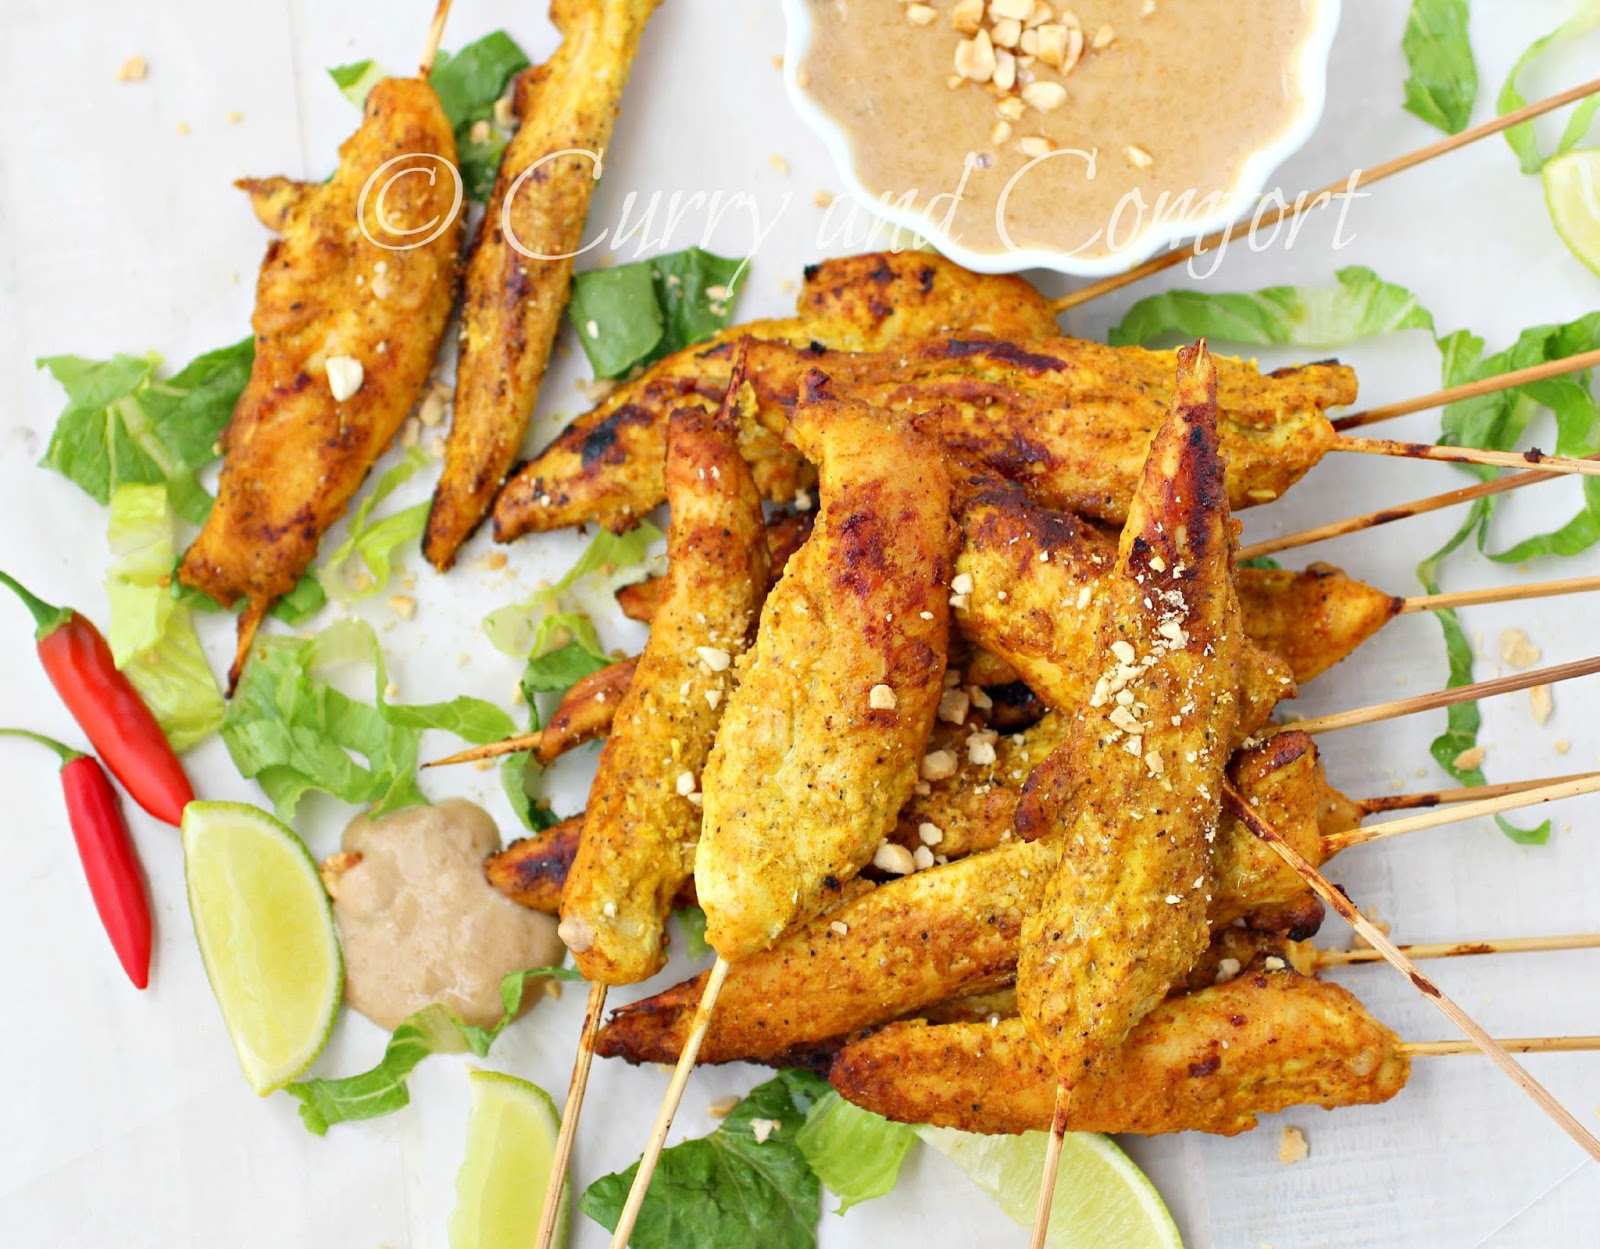 ... Simmer: Asian Chicken Satay Skewers with Spicy Thai Peanut Sauce